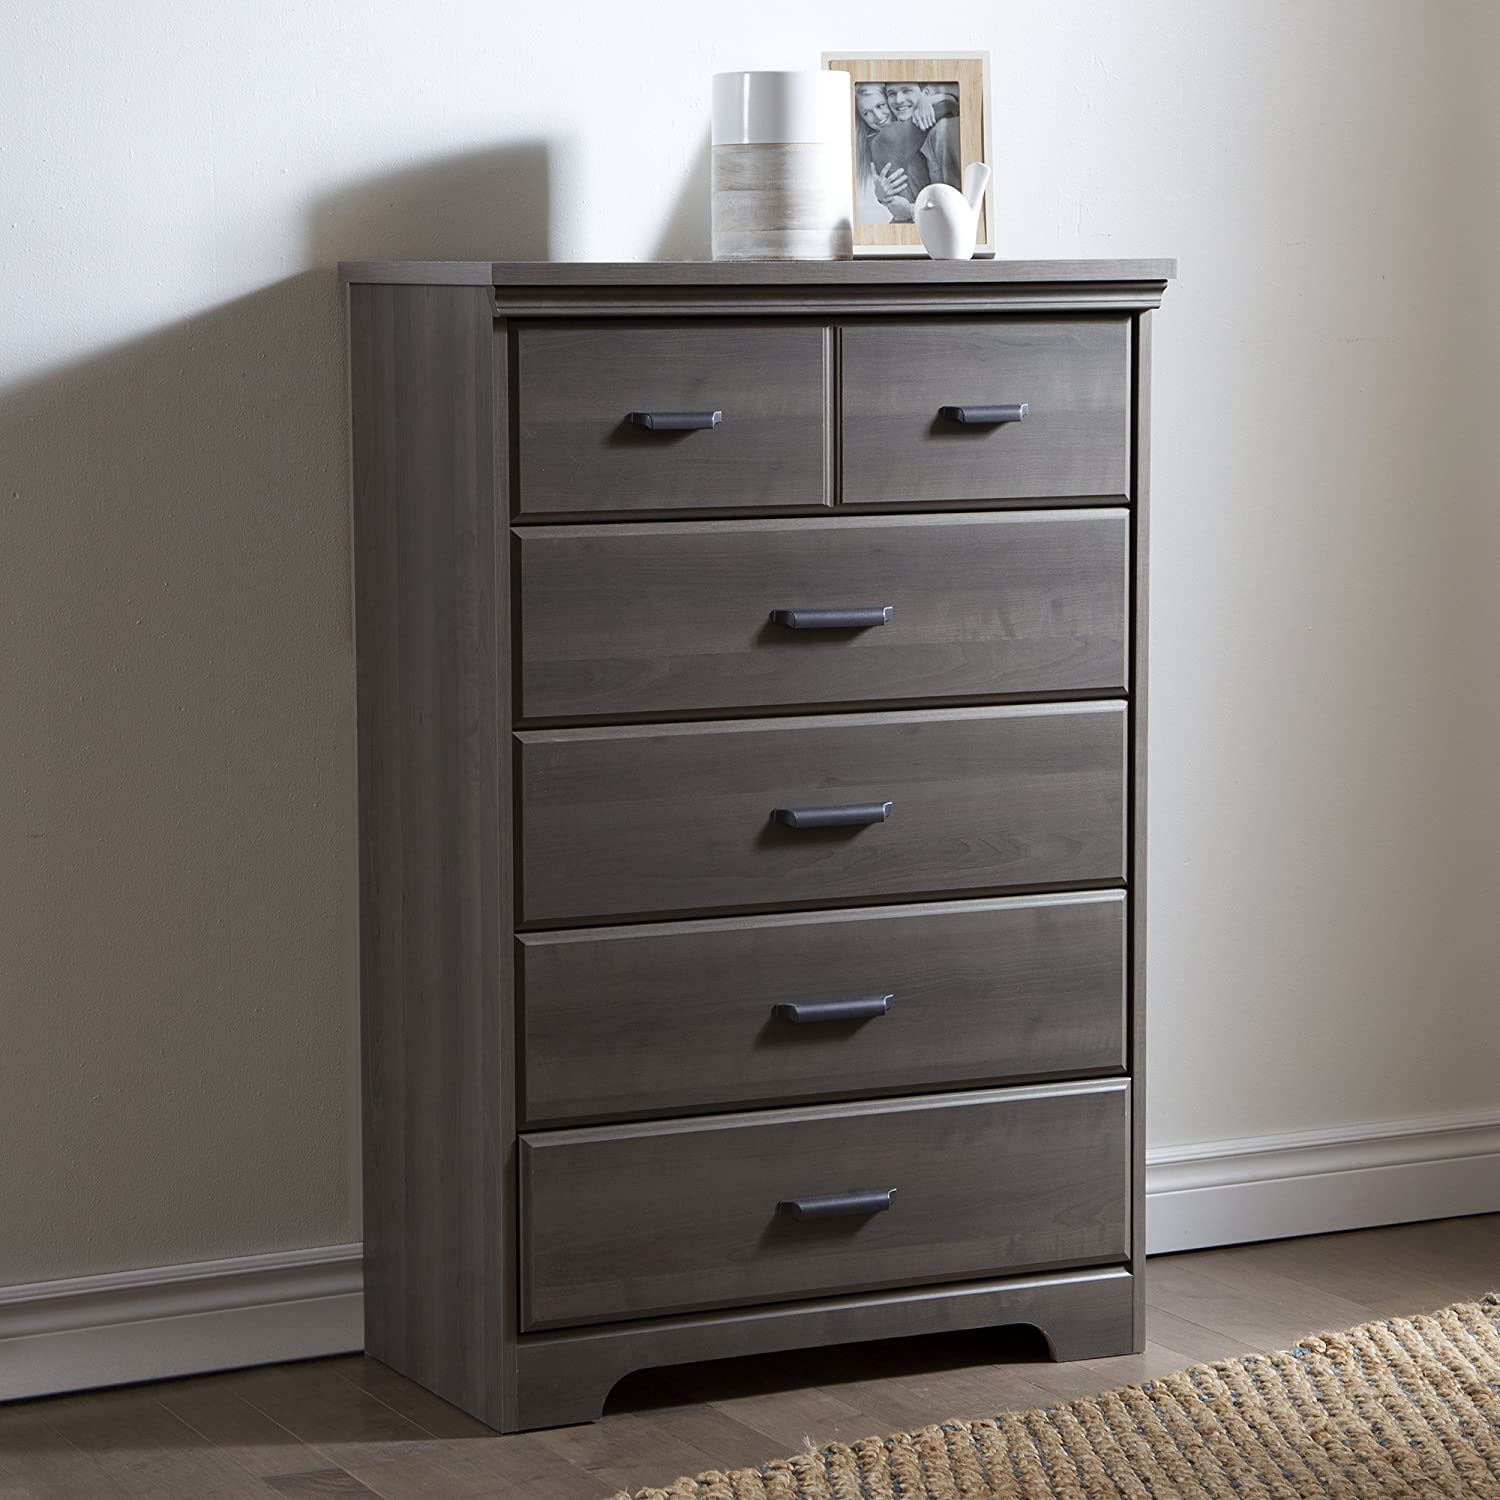 Ikea bedroom furniture chest of drawers - South Shore Versa 5 Drawer Chest Gray Maple